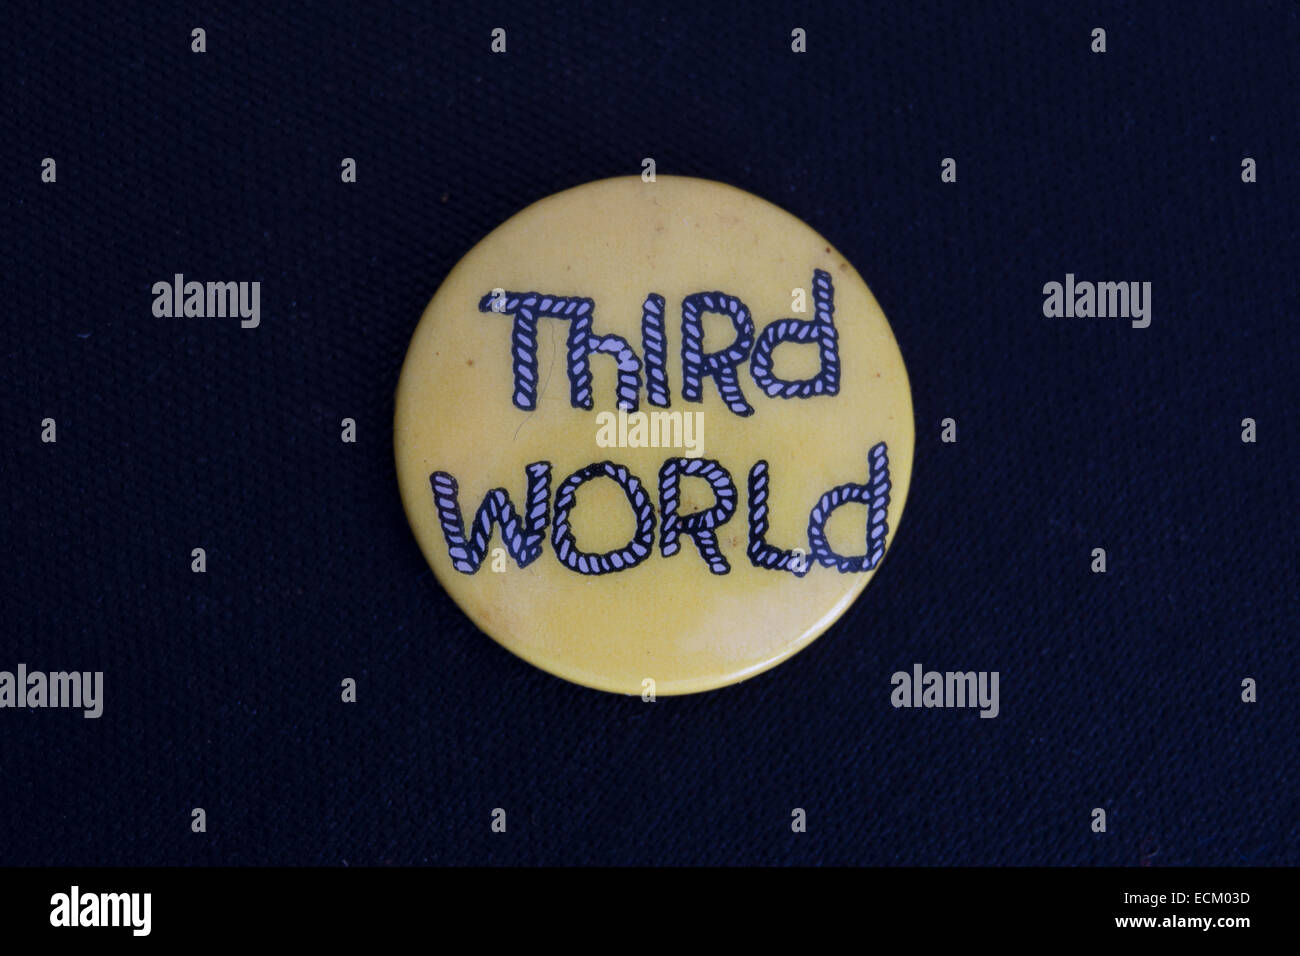 lapel badge promoting third world, a jamaican reggae band founded in the 1970s - Stock Image